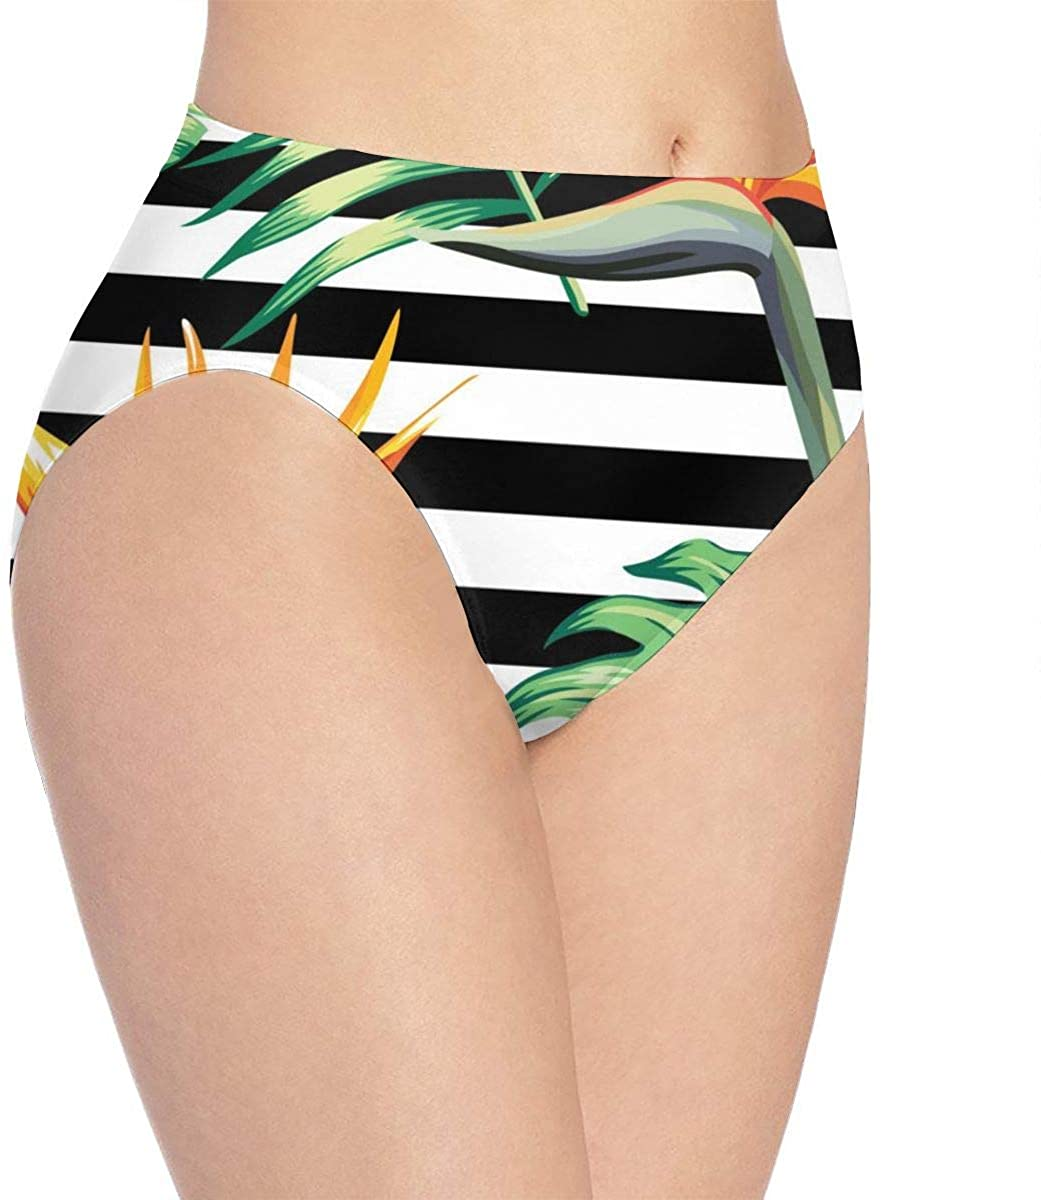 Womens Invisibles Hipster Panty,Palm Banana Leaf Black and White Stripes Panties Breathable Stretchy Low Waist Briefs,for Teens Women